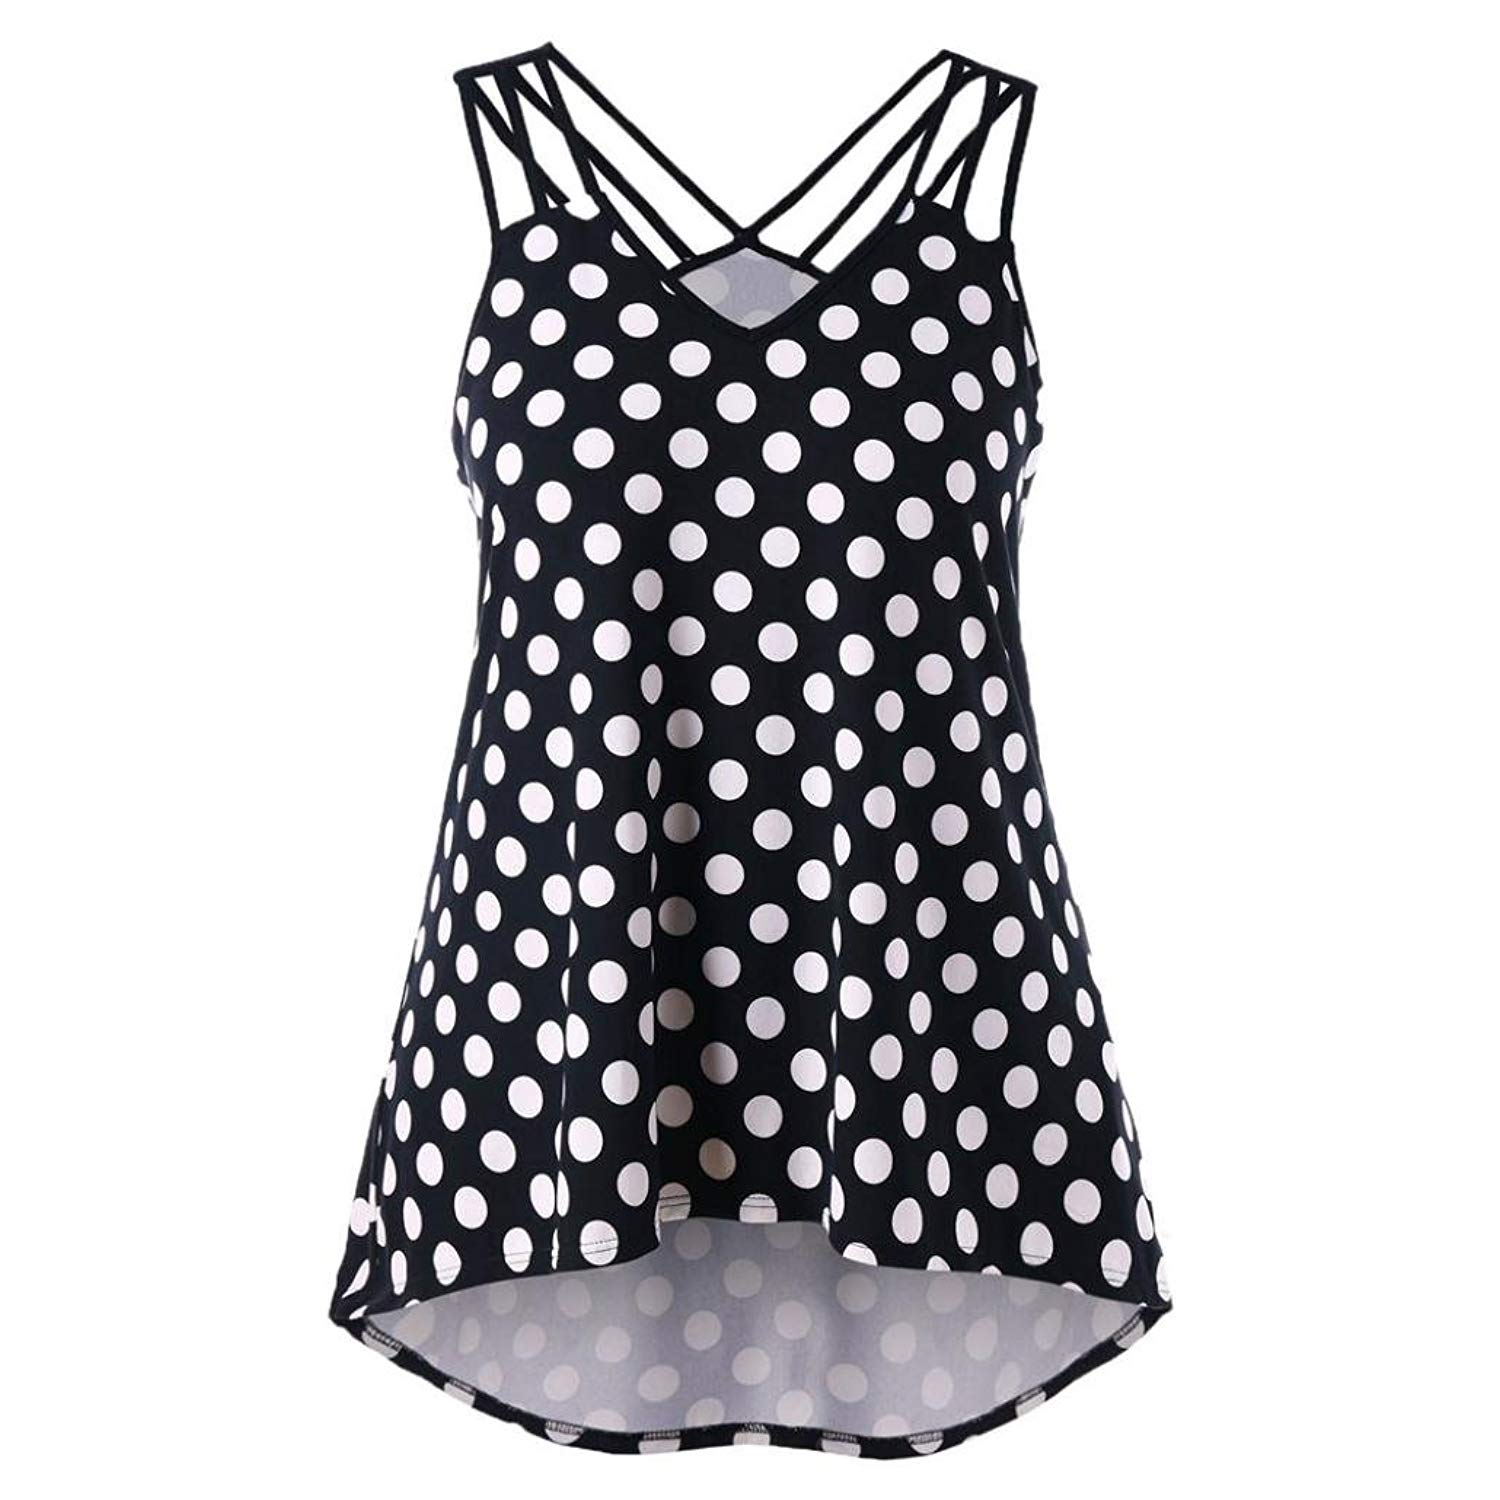 Boomboom Women Vest, Casual Women Black White Wave Point Printing Polka Dot Tank Tops